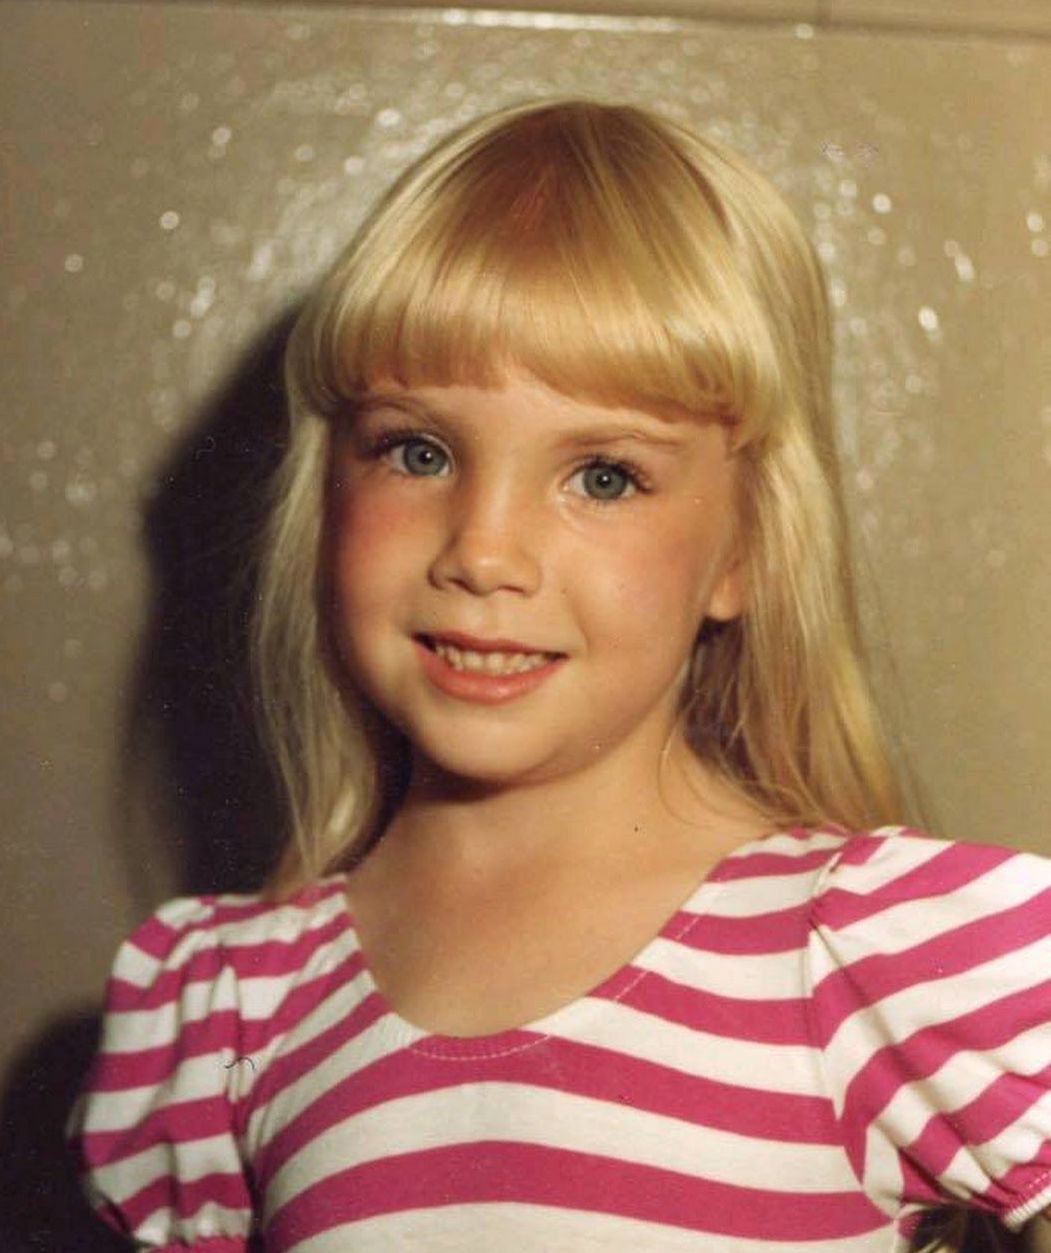 Heather O'Rourke as a child star